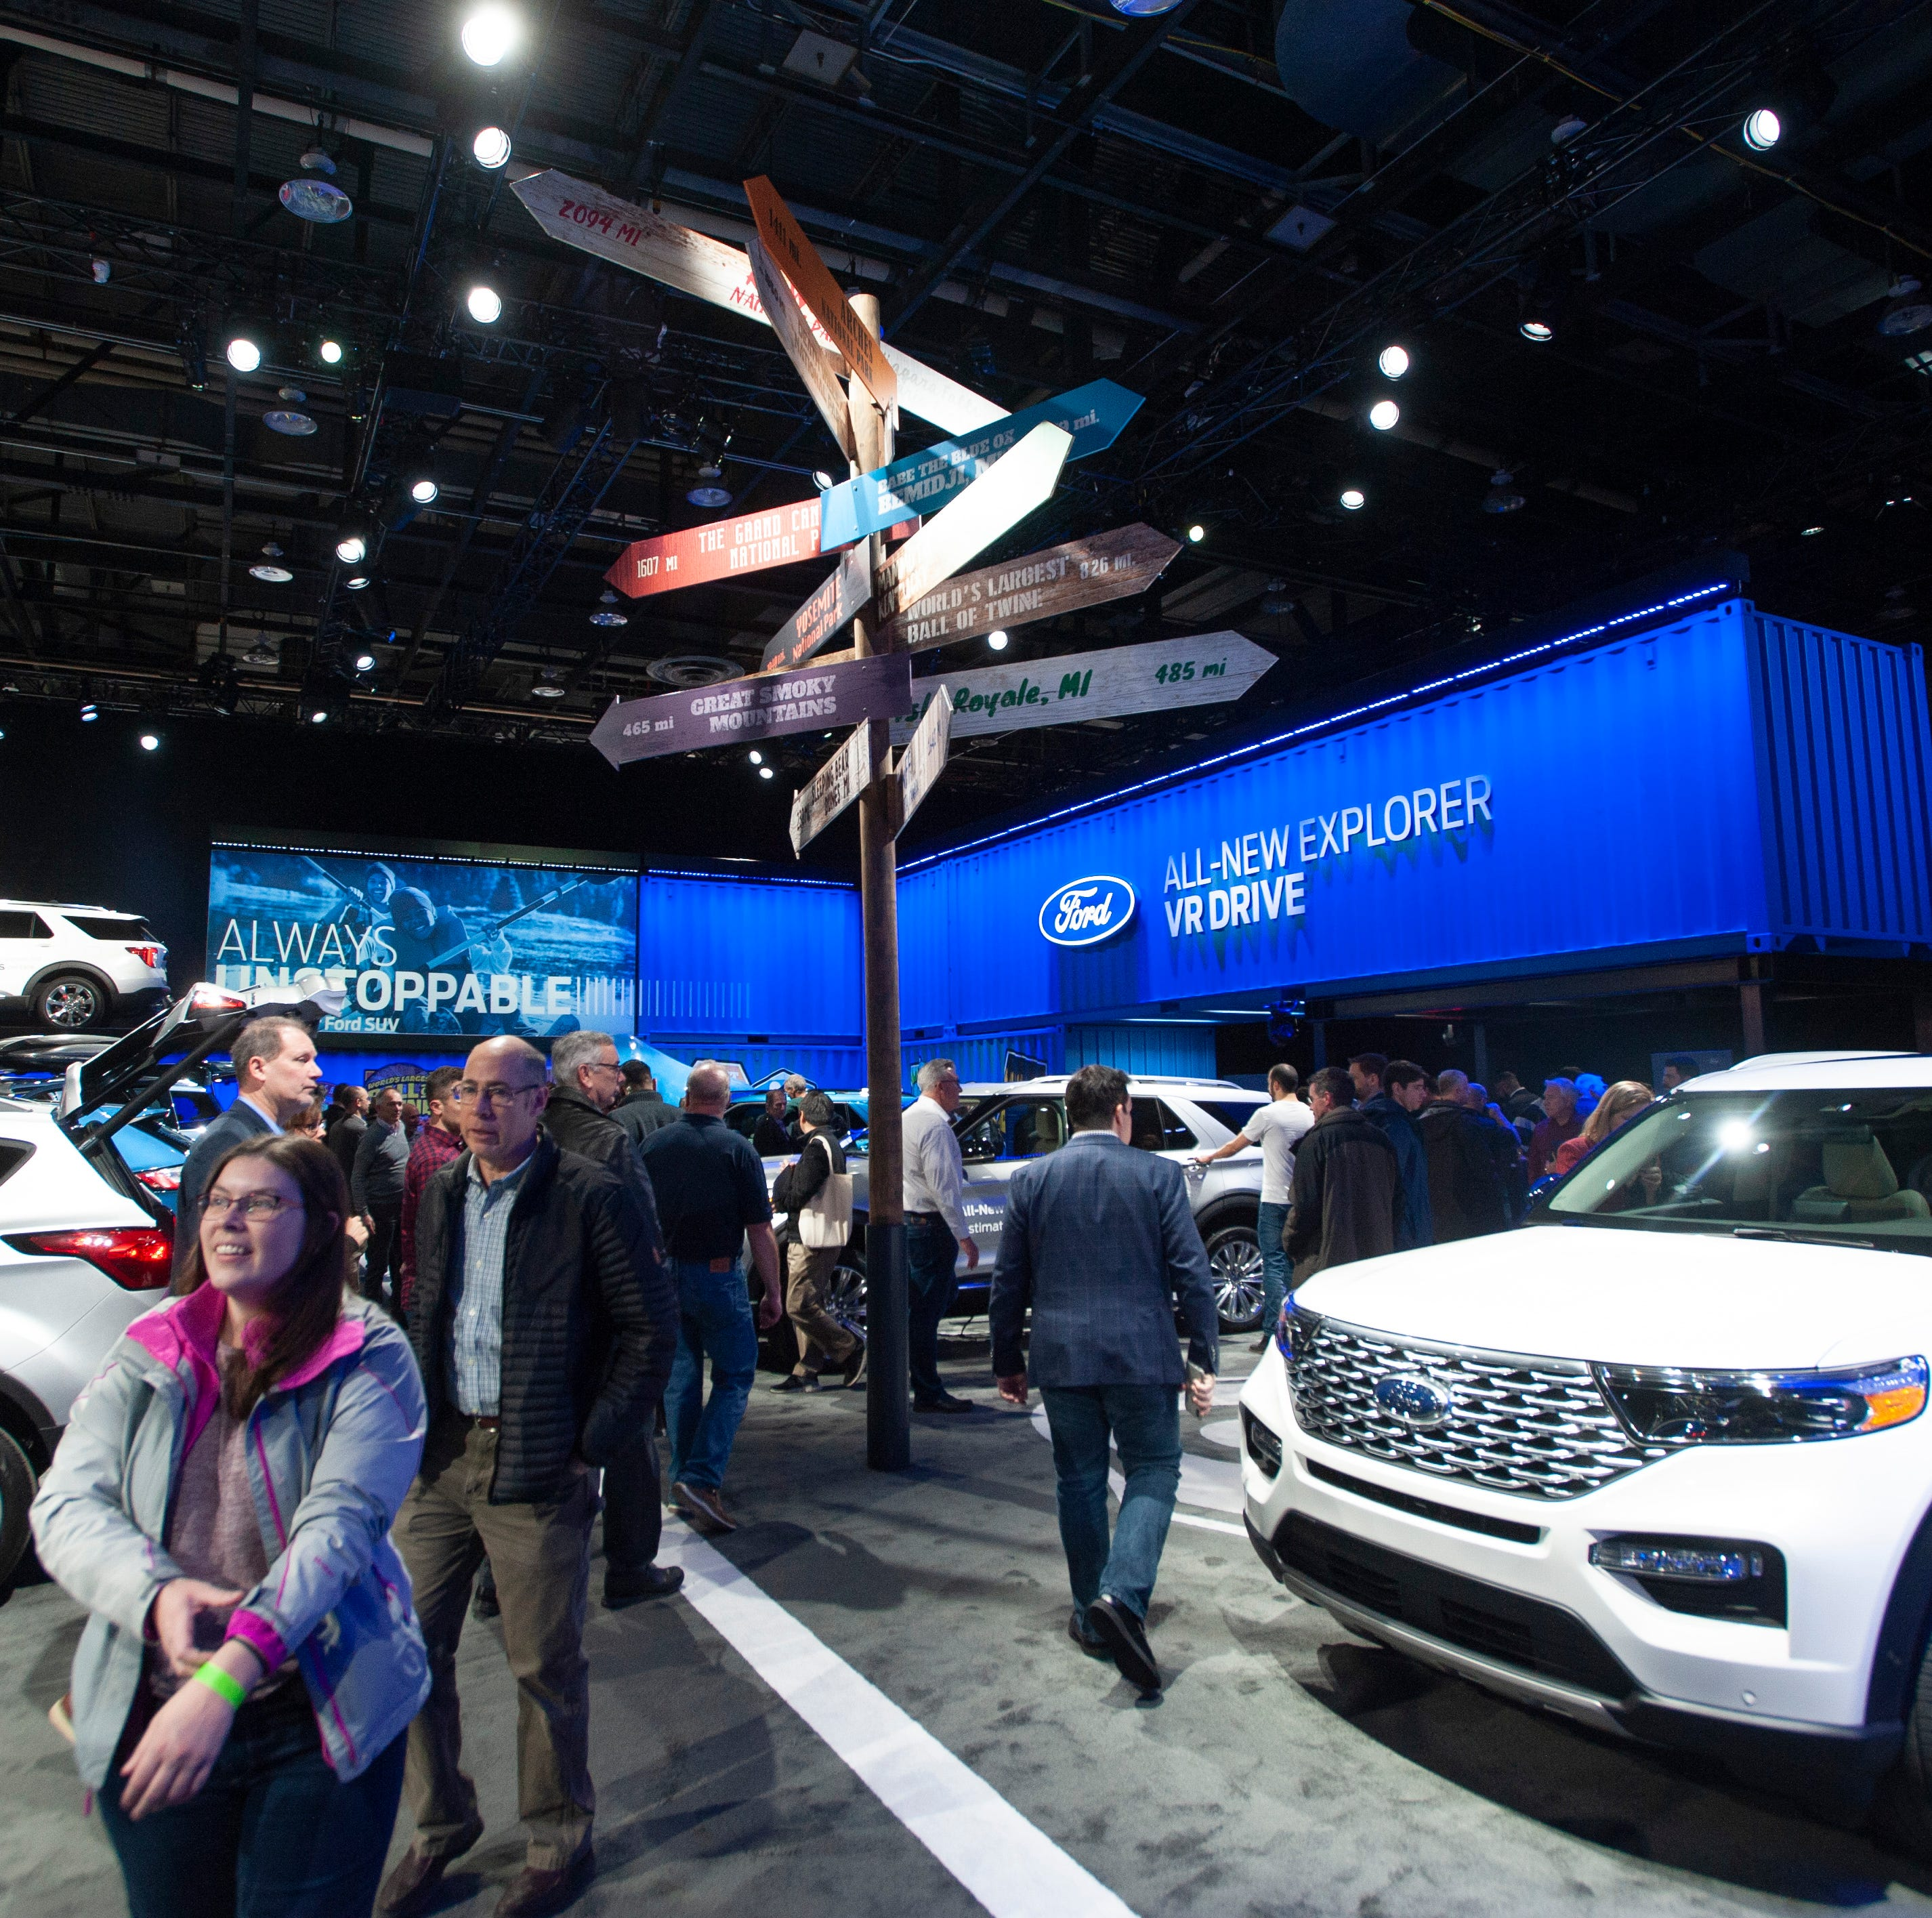 Detroit auto show consumer guide: Smaller show, big acts